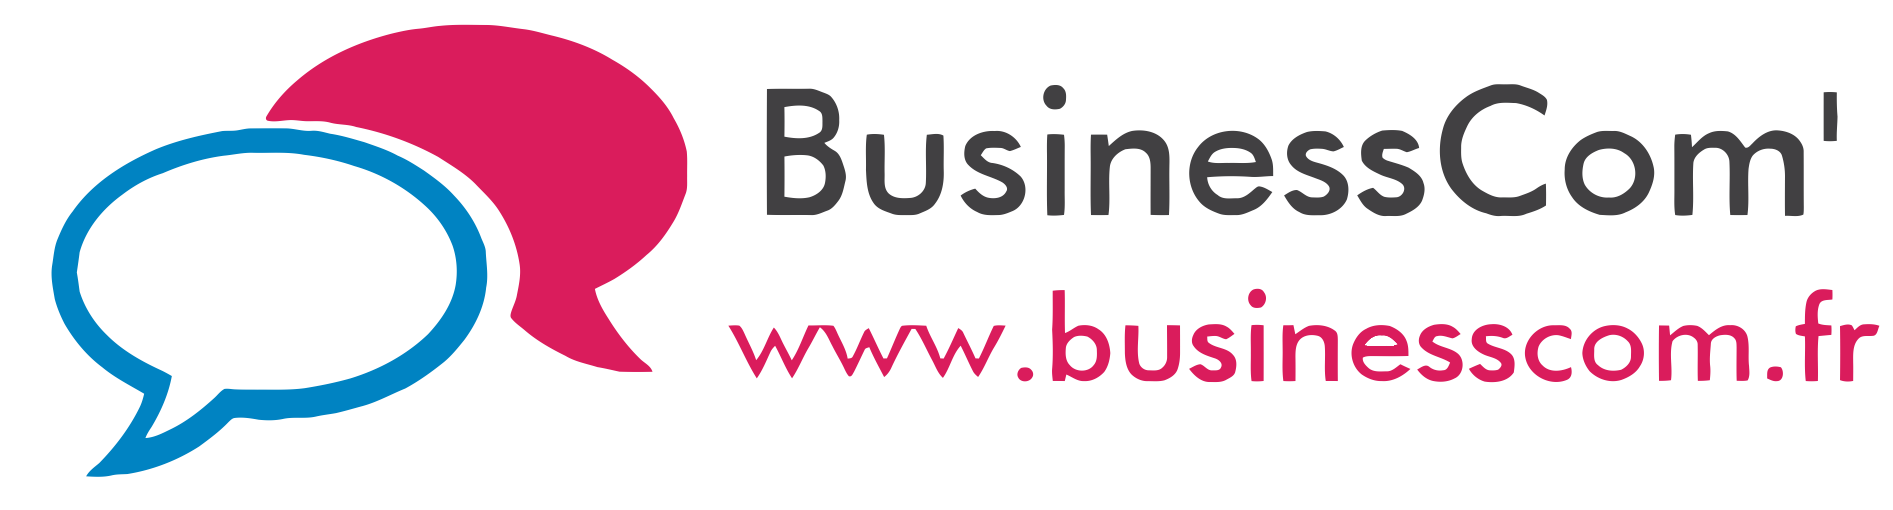 Businesscom.fr